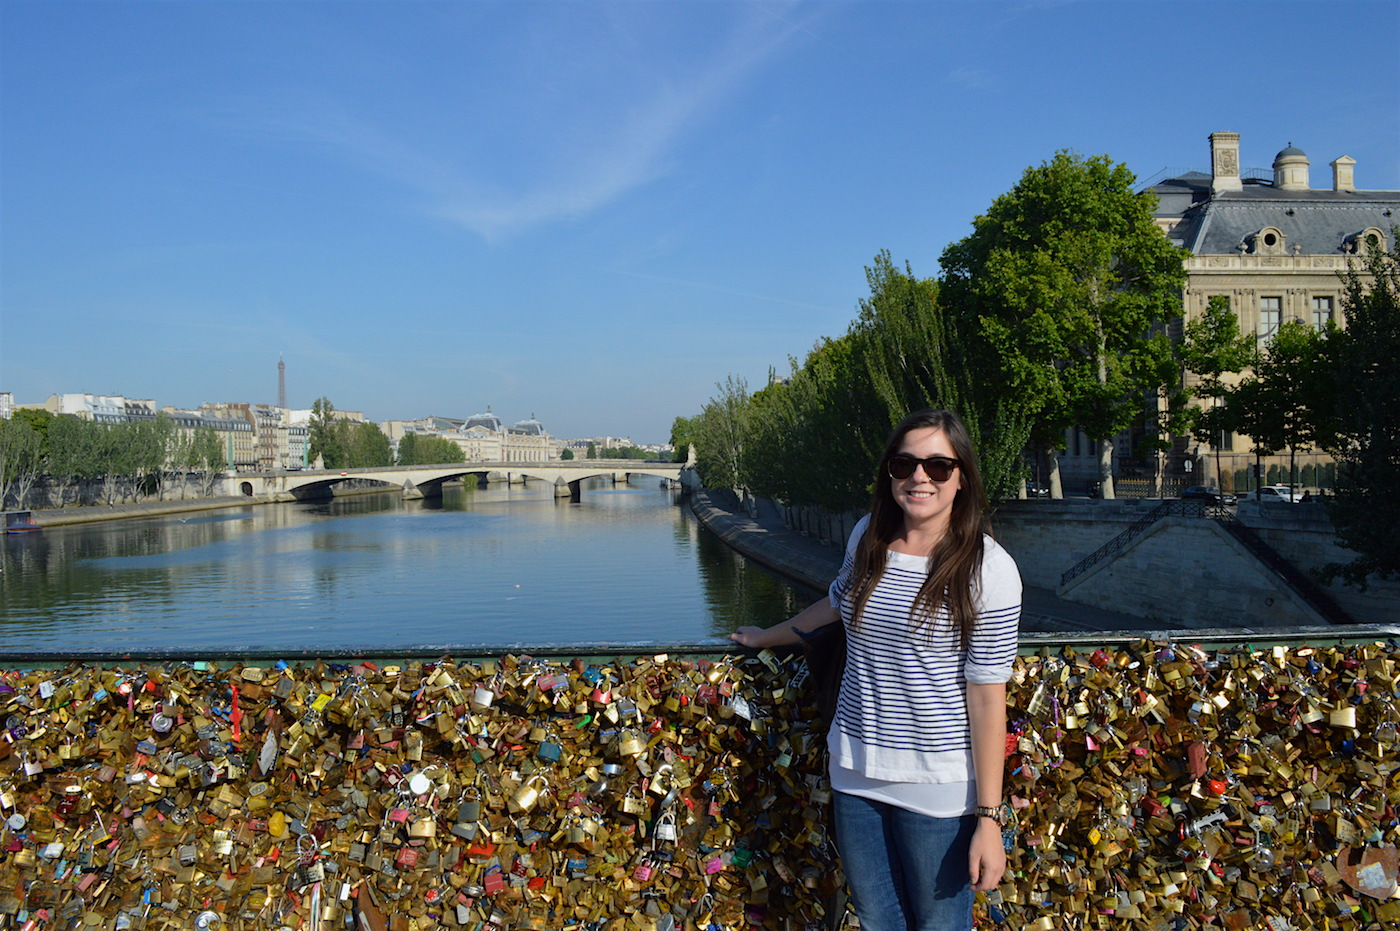 Paris, France (before they took those locks down!)